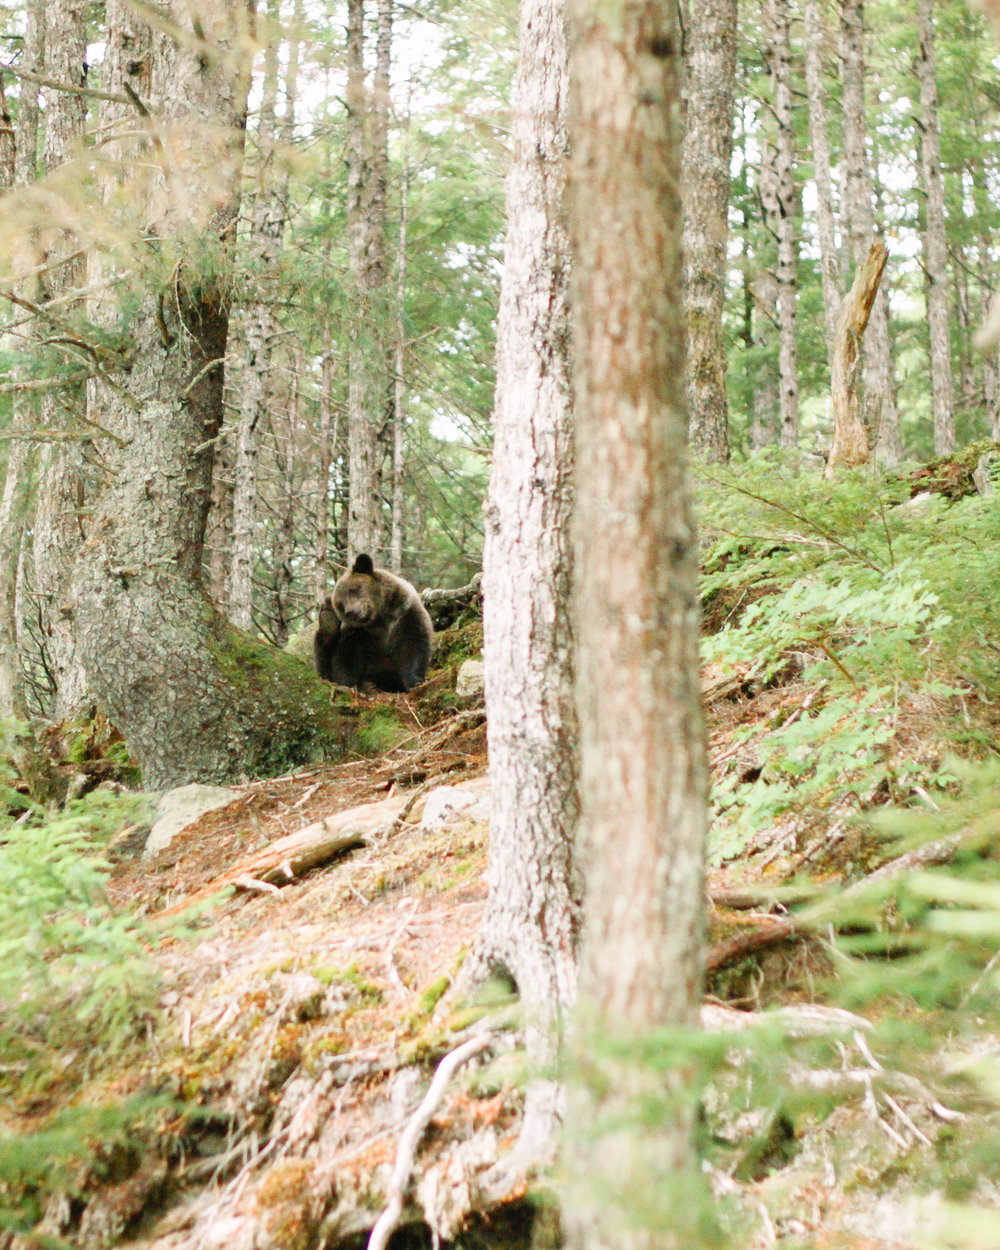 Grizzly Bear in Haines, Alaska Travel Blog | MALLORIE OWENS